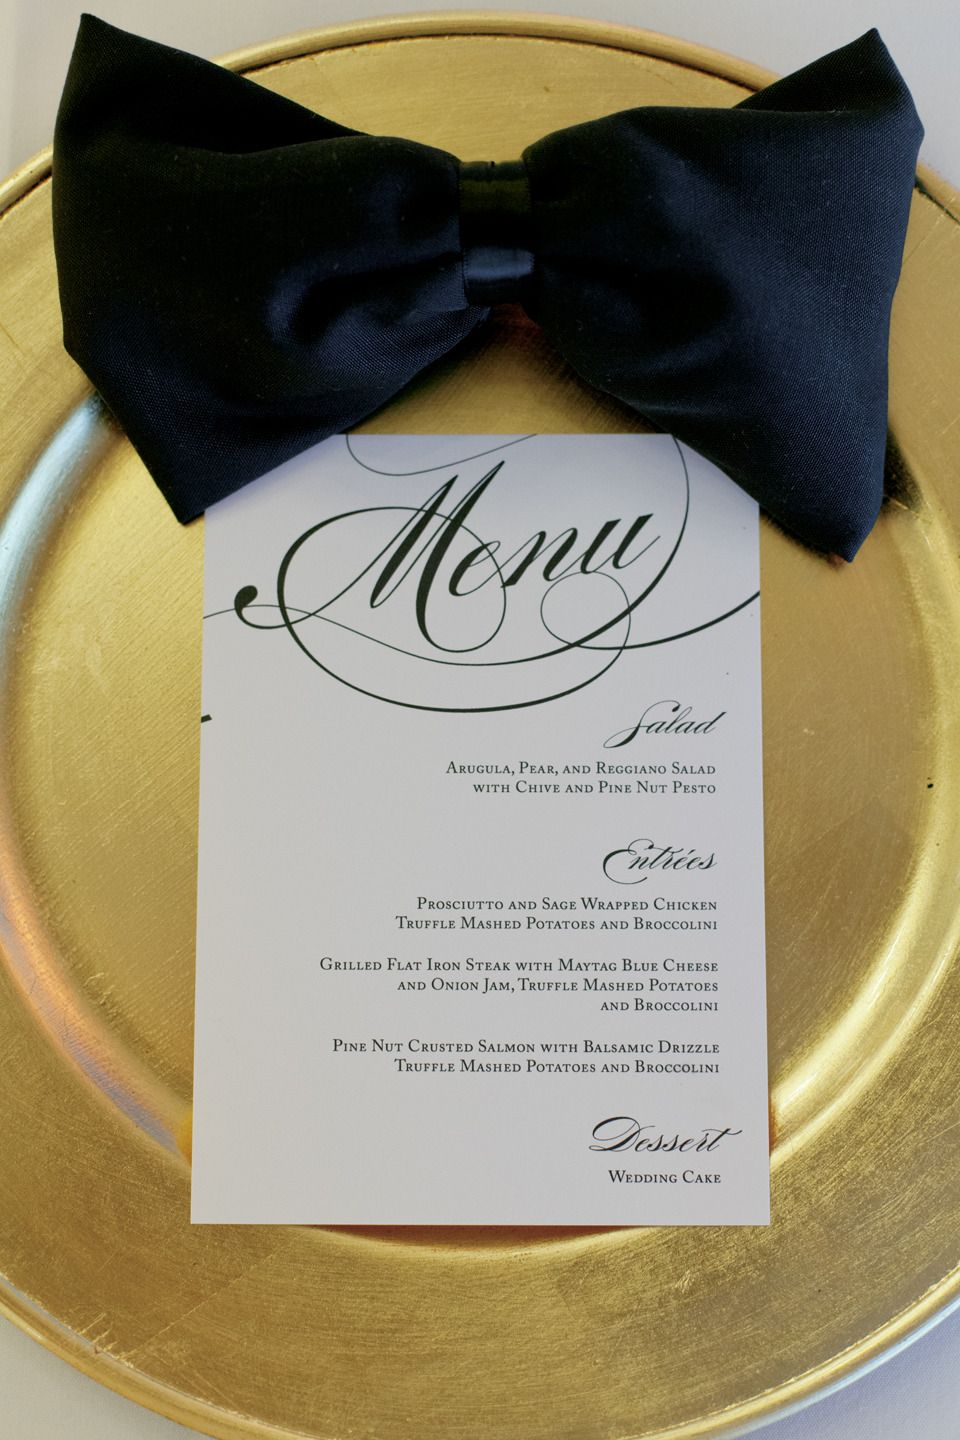 Up close photograph of wedding table/setting. I love how the napkins are in the shape of a bow tie.